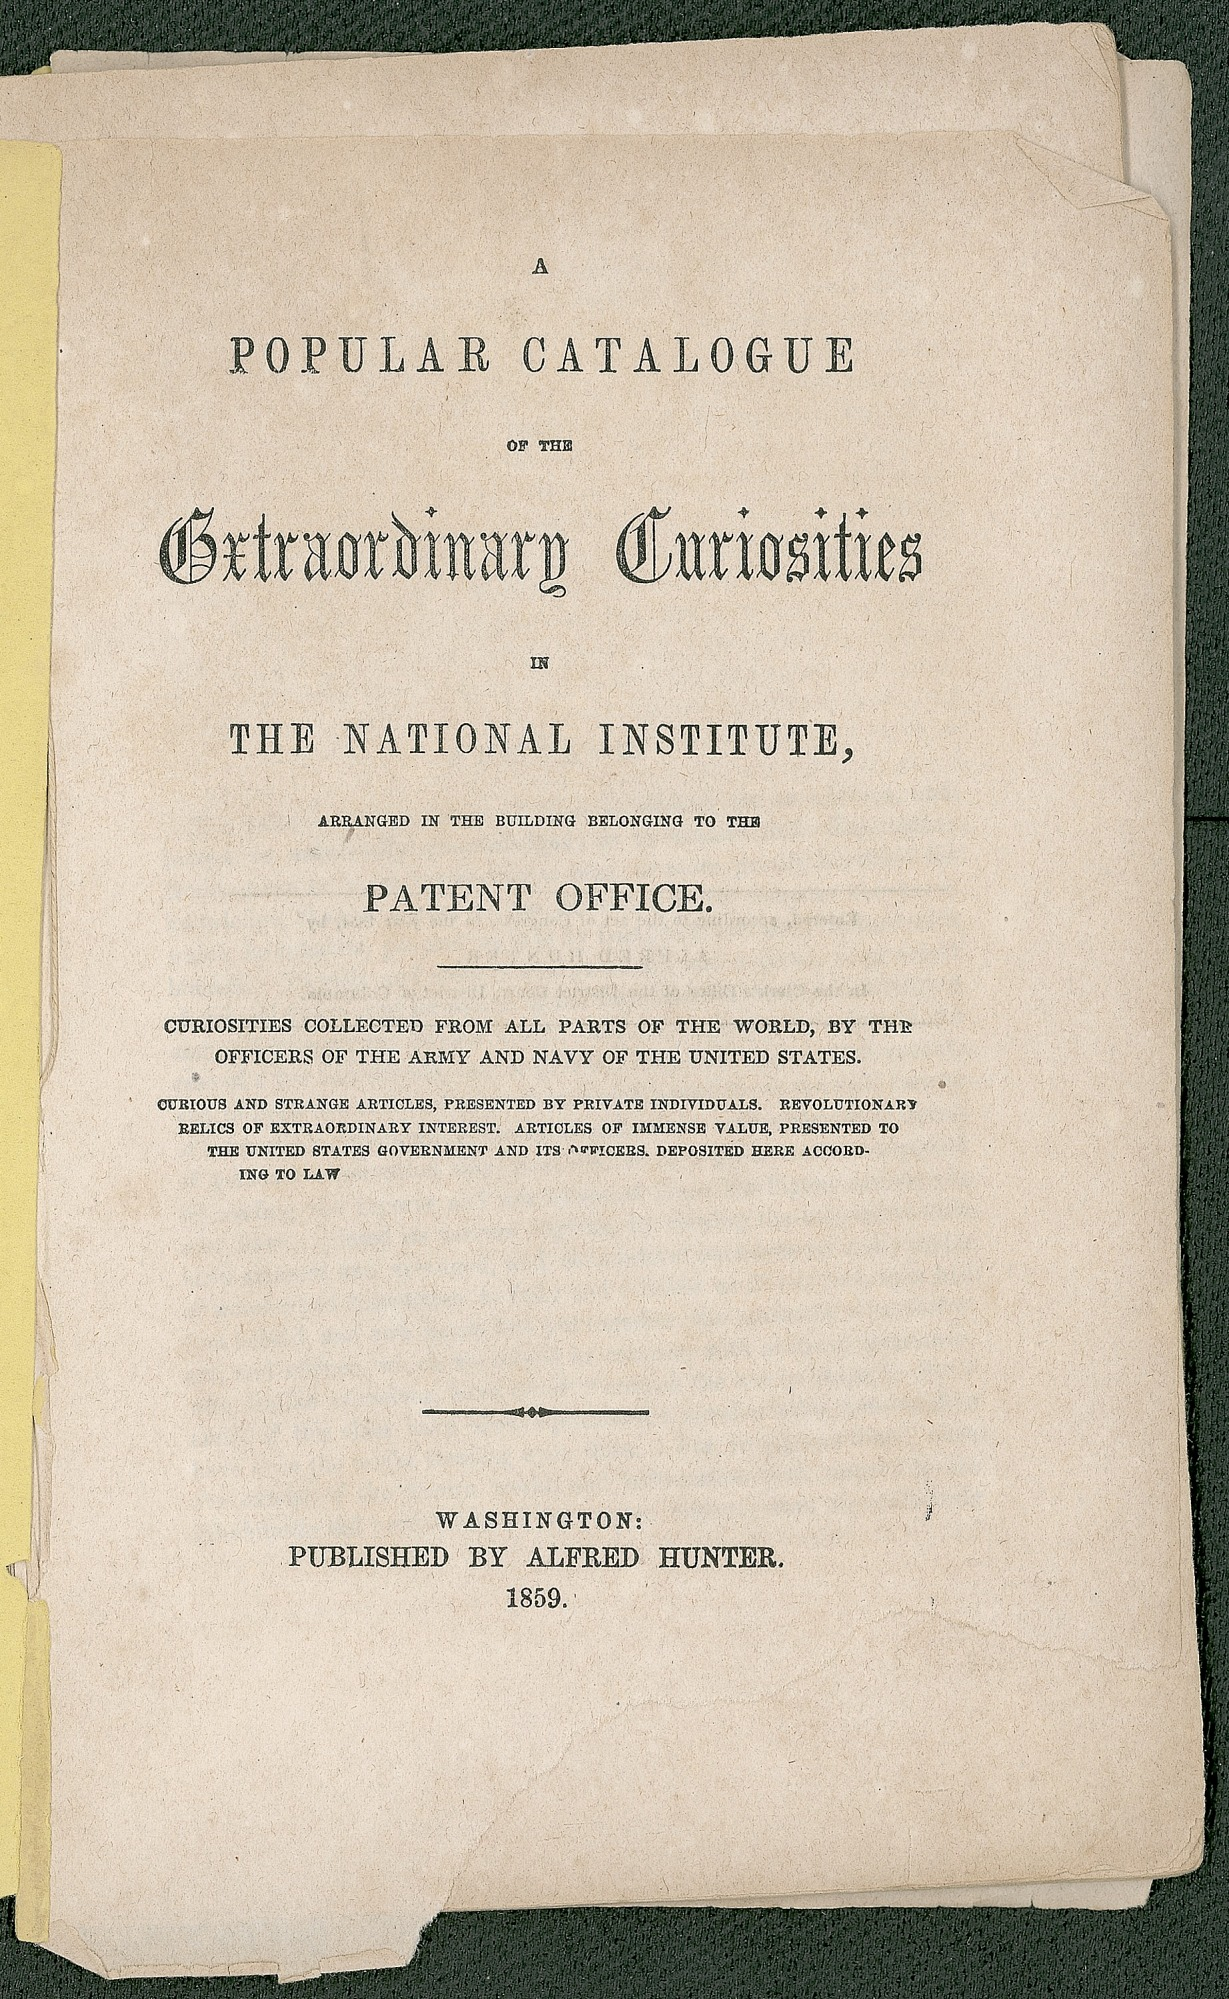 """Title Page of the National Institute's Catalogue of """"Extraordinary Curiosities"""""""